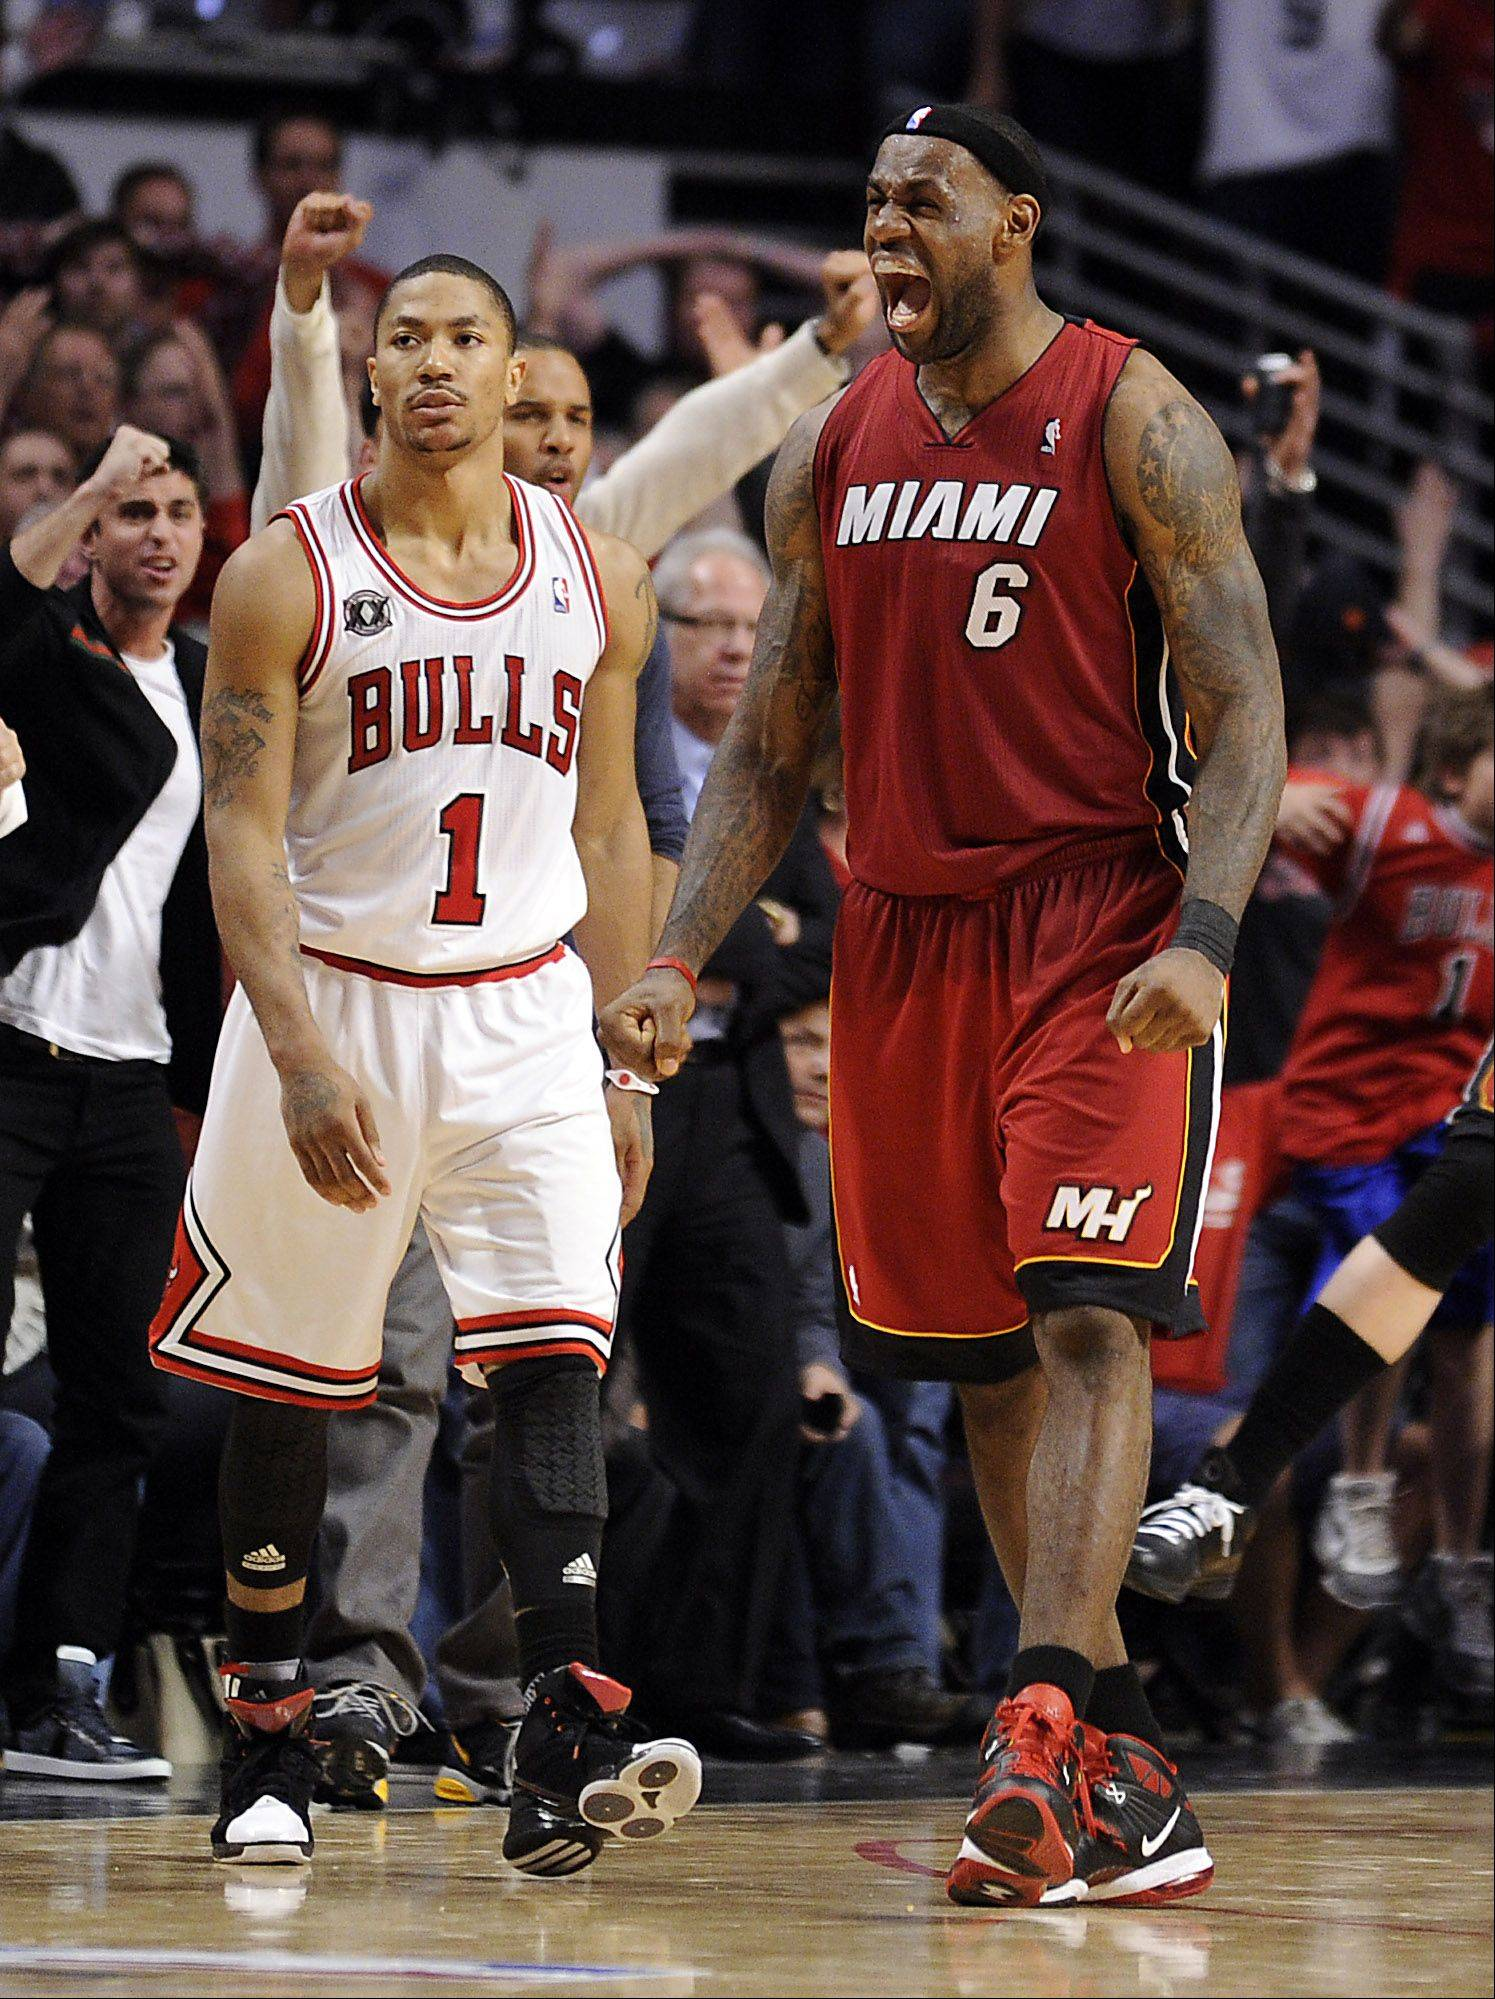 The Heat's LeBron James celebrates his victory as Derrick Rose walks away with a stunned look.